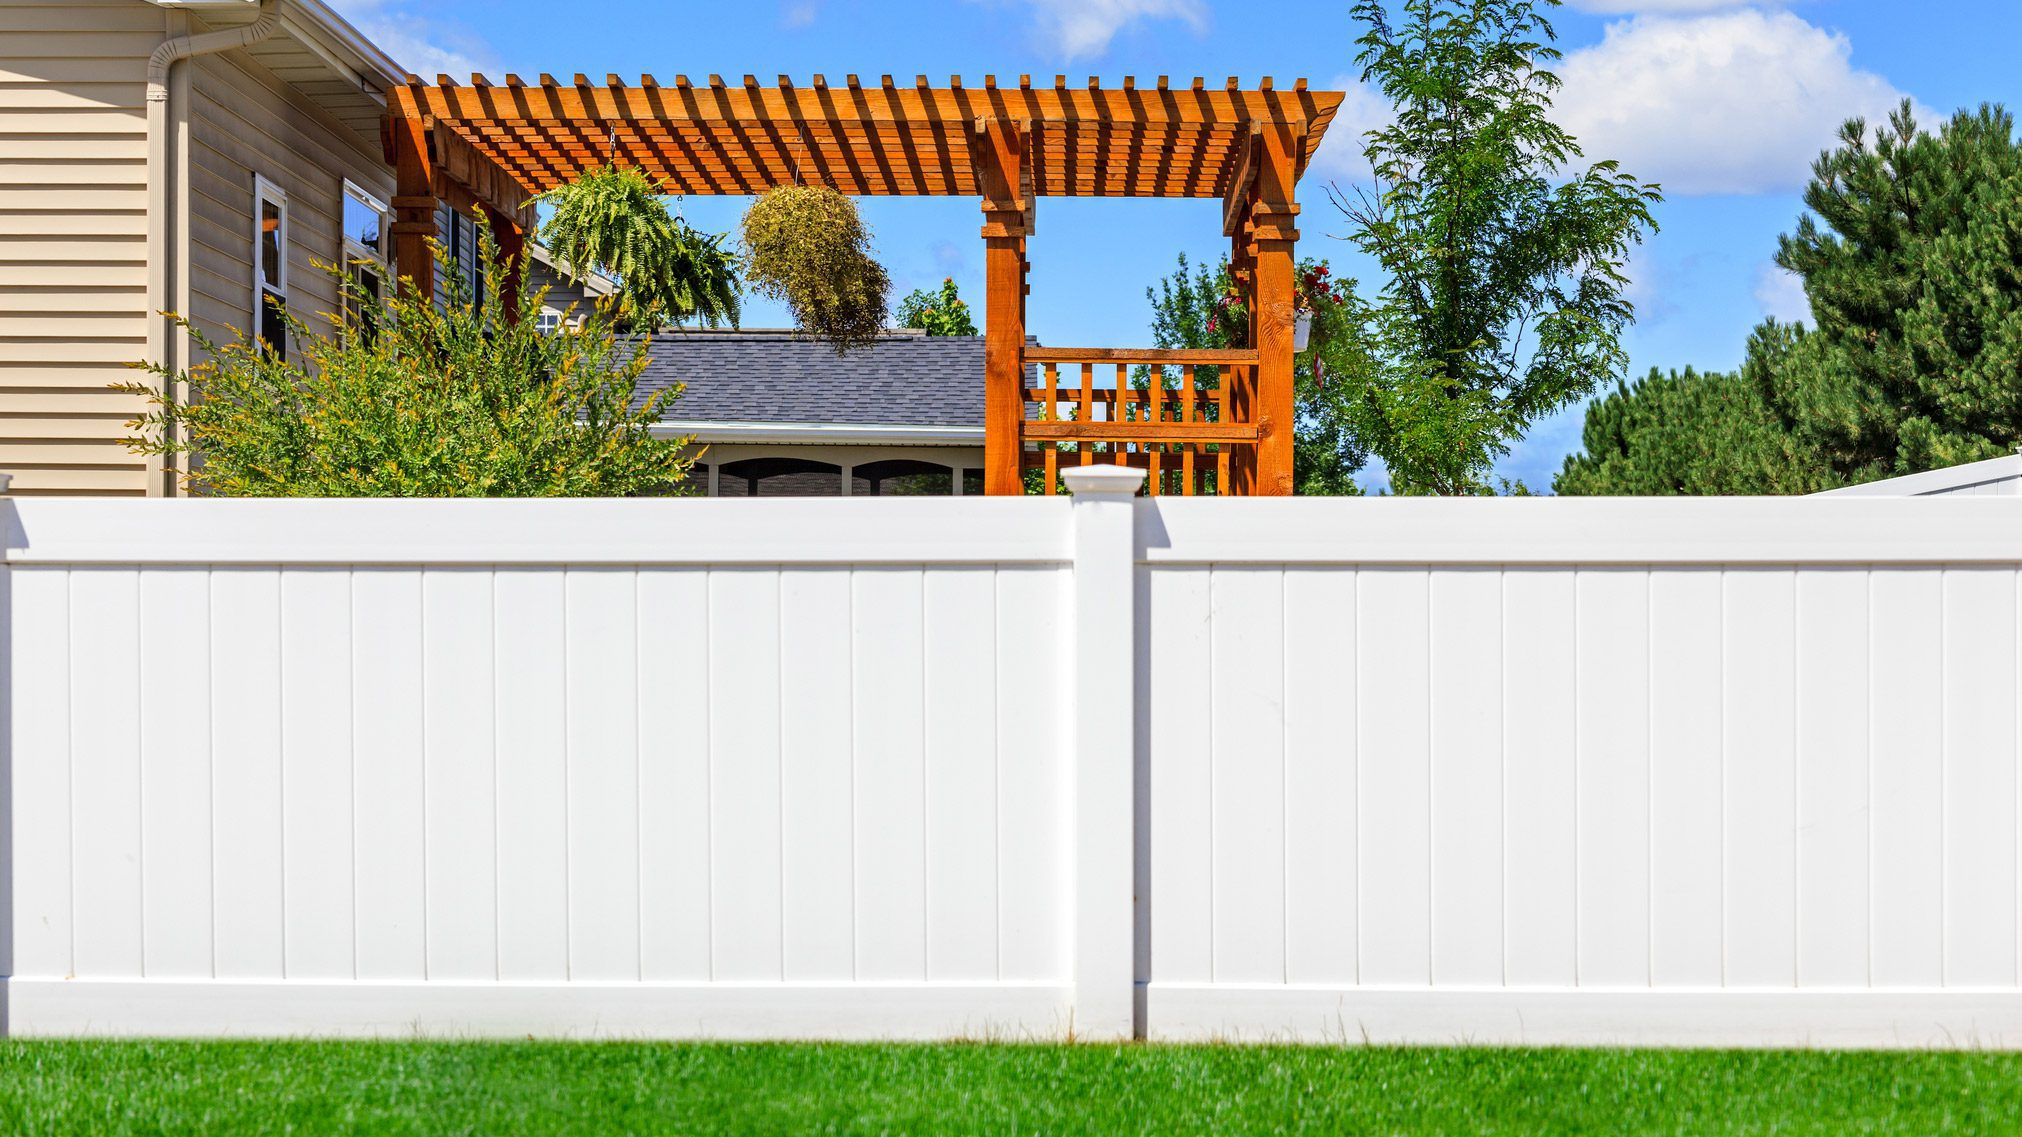 Backyard Fence What Is A Privacy Fence Hide Your Home From Nosy Neighbors